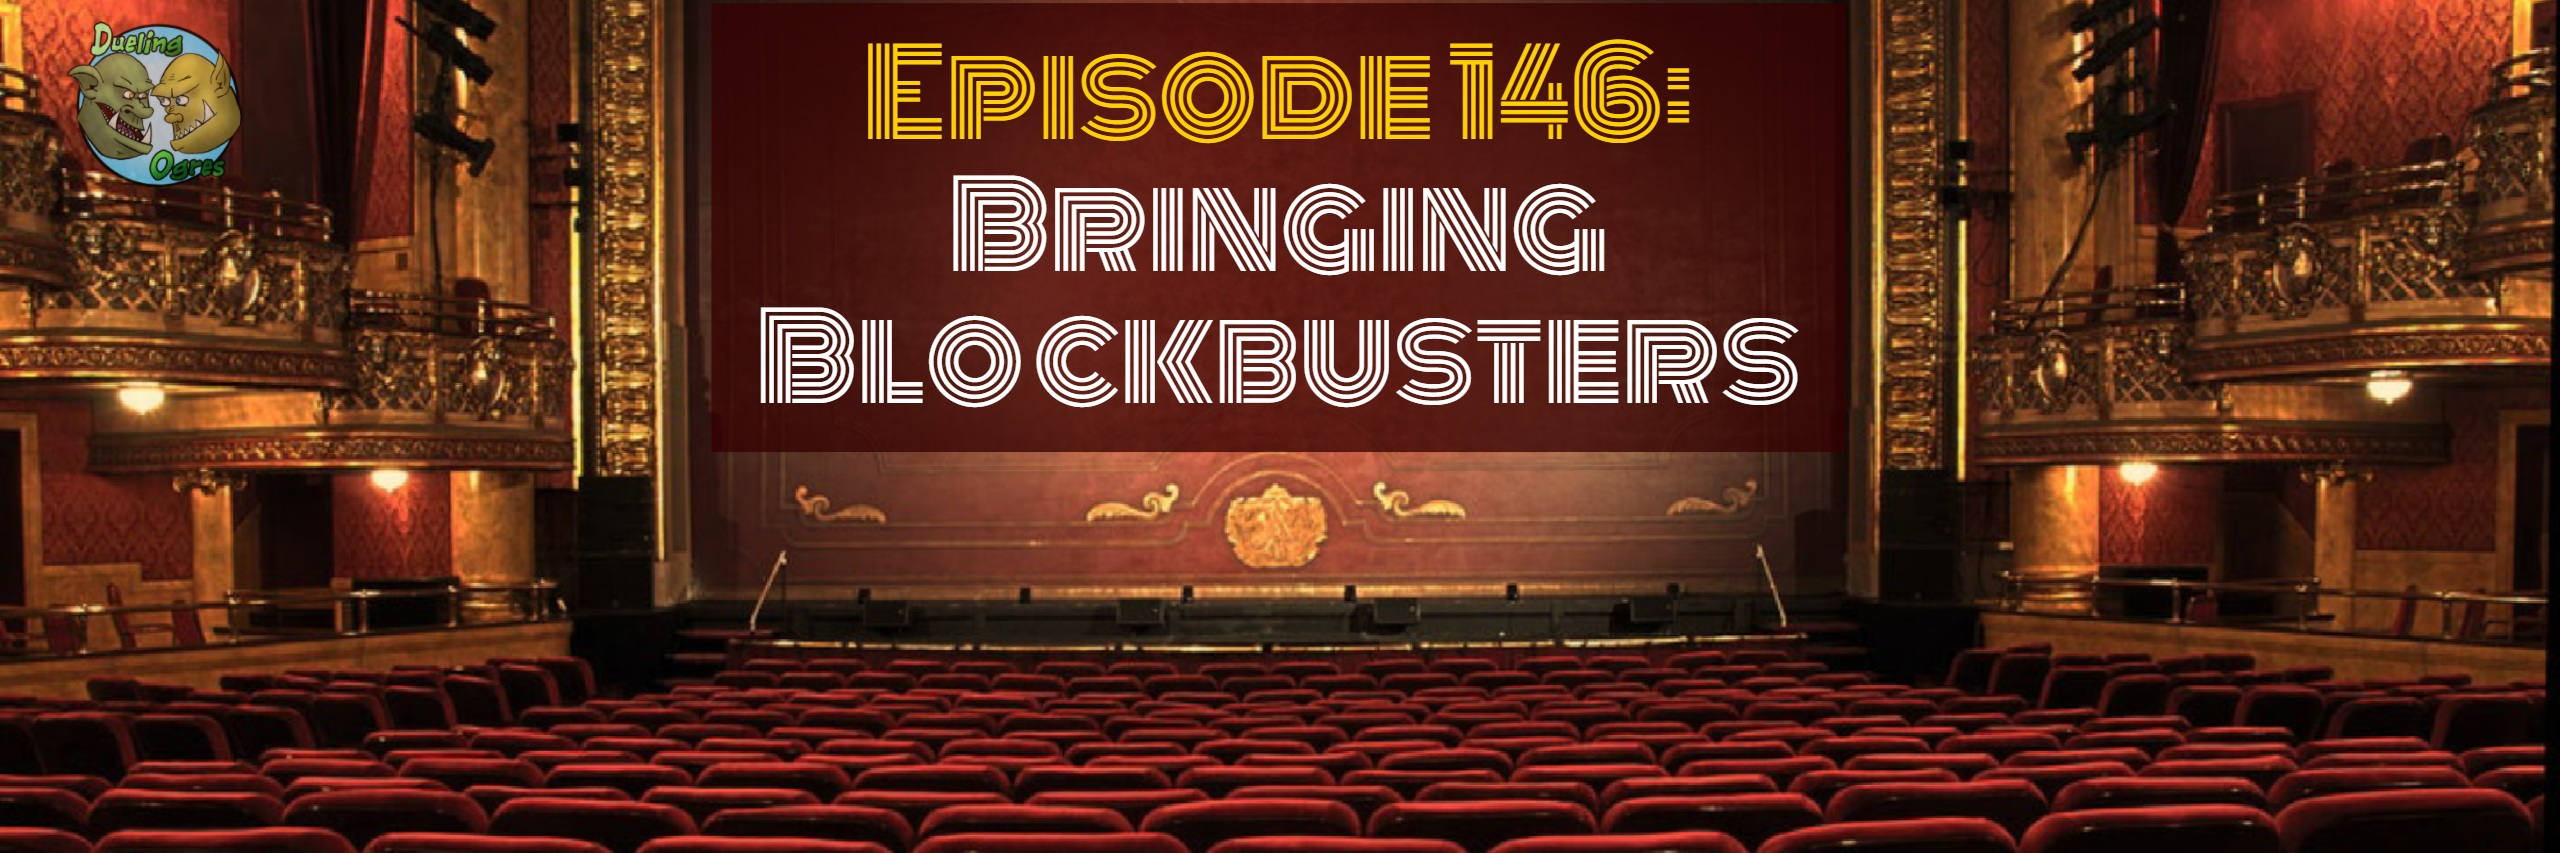 Episode 146: Bringing Blockbusters